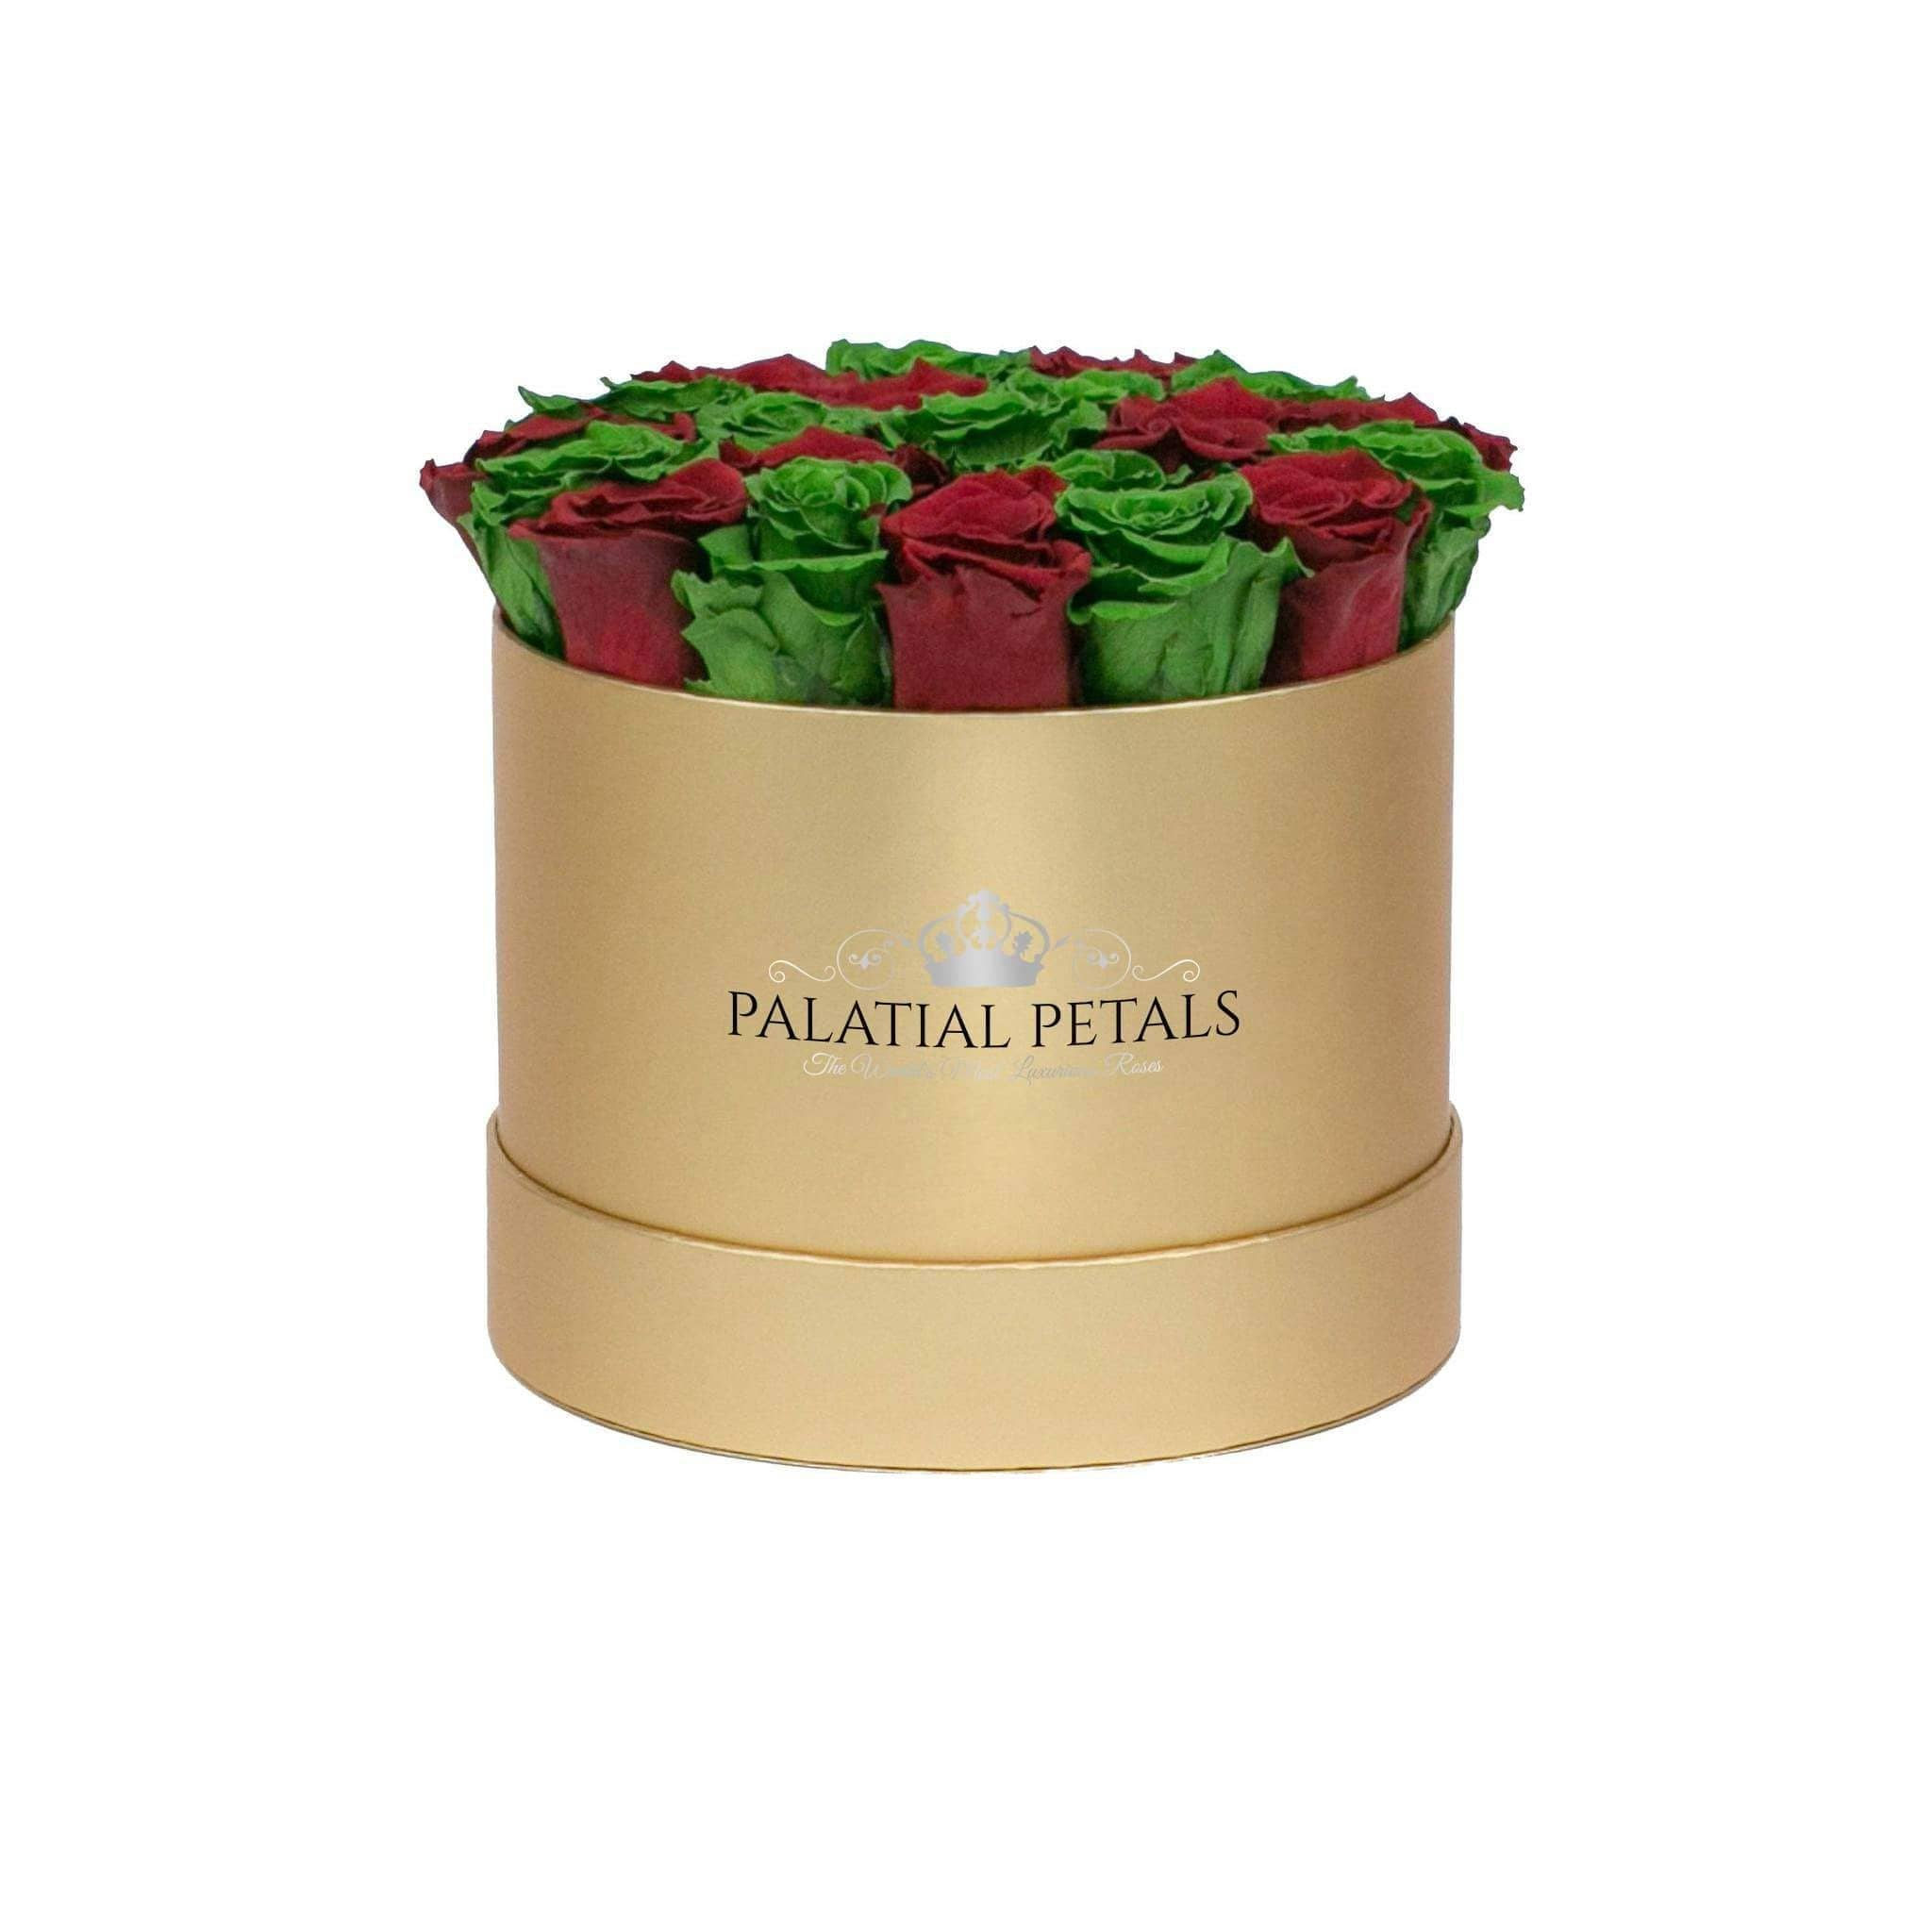 Red & Green Roses That Last A Year - Medium Rose Box - Palatial Petals